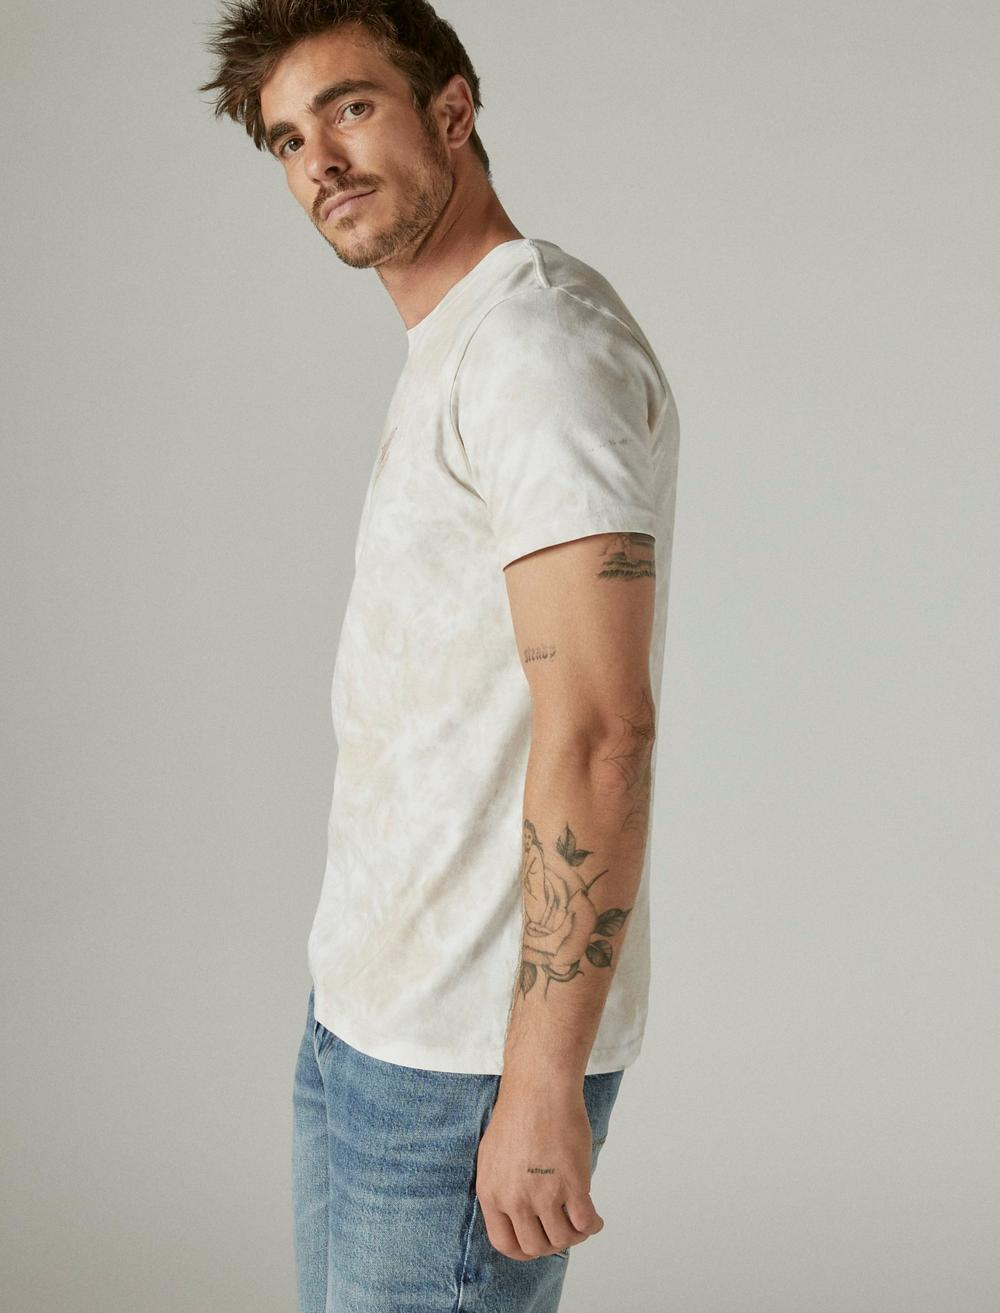 MILLER HIGH LIFE GRAPHIC TEE, image 3